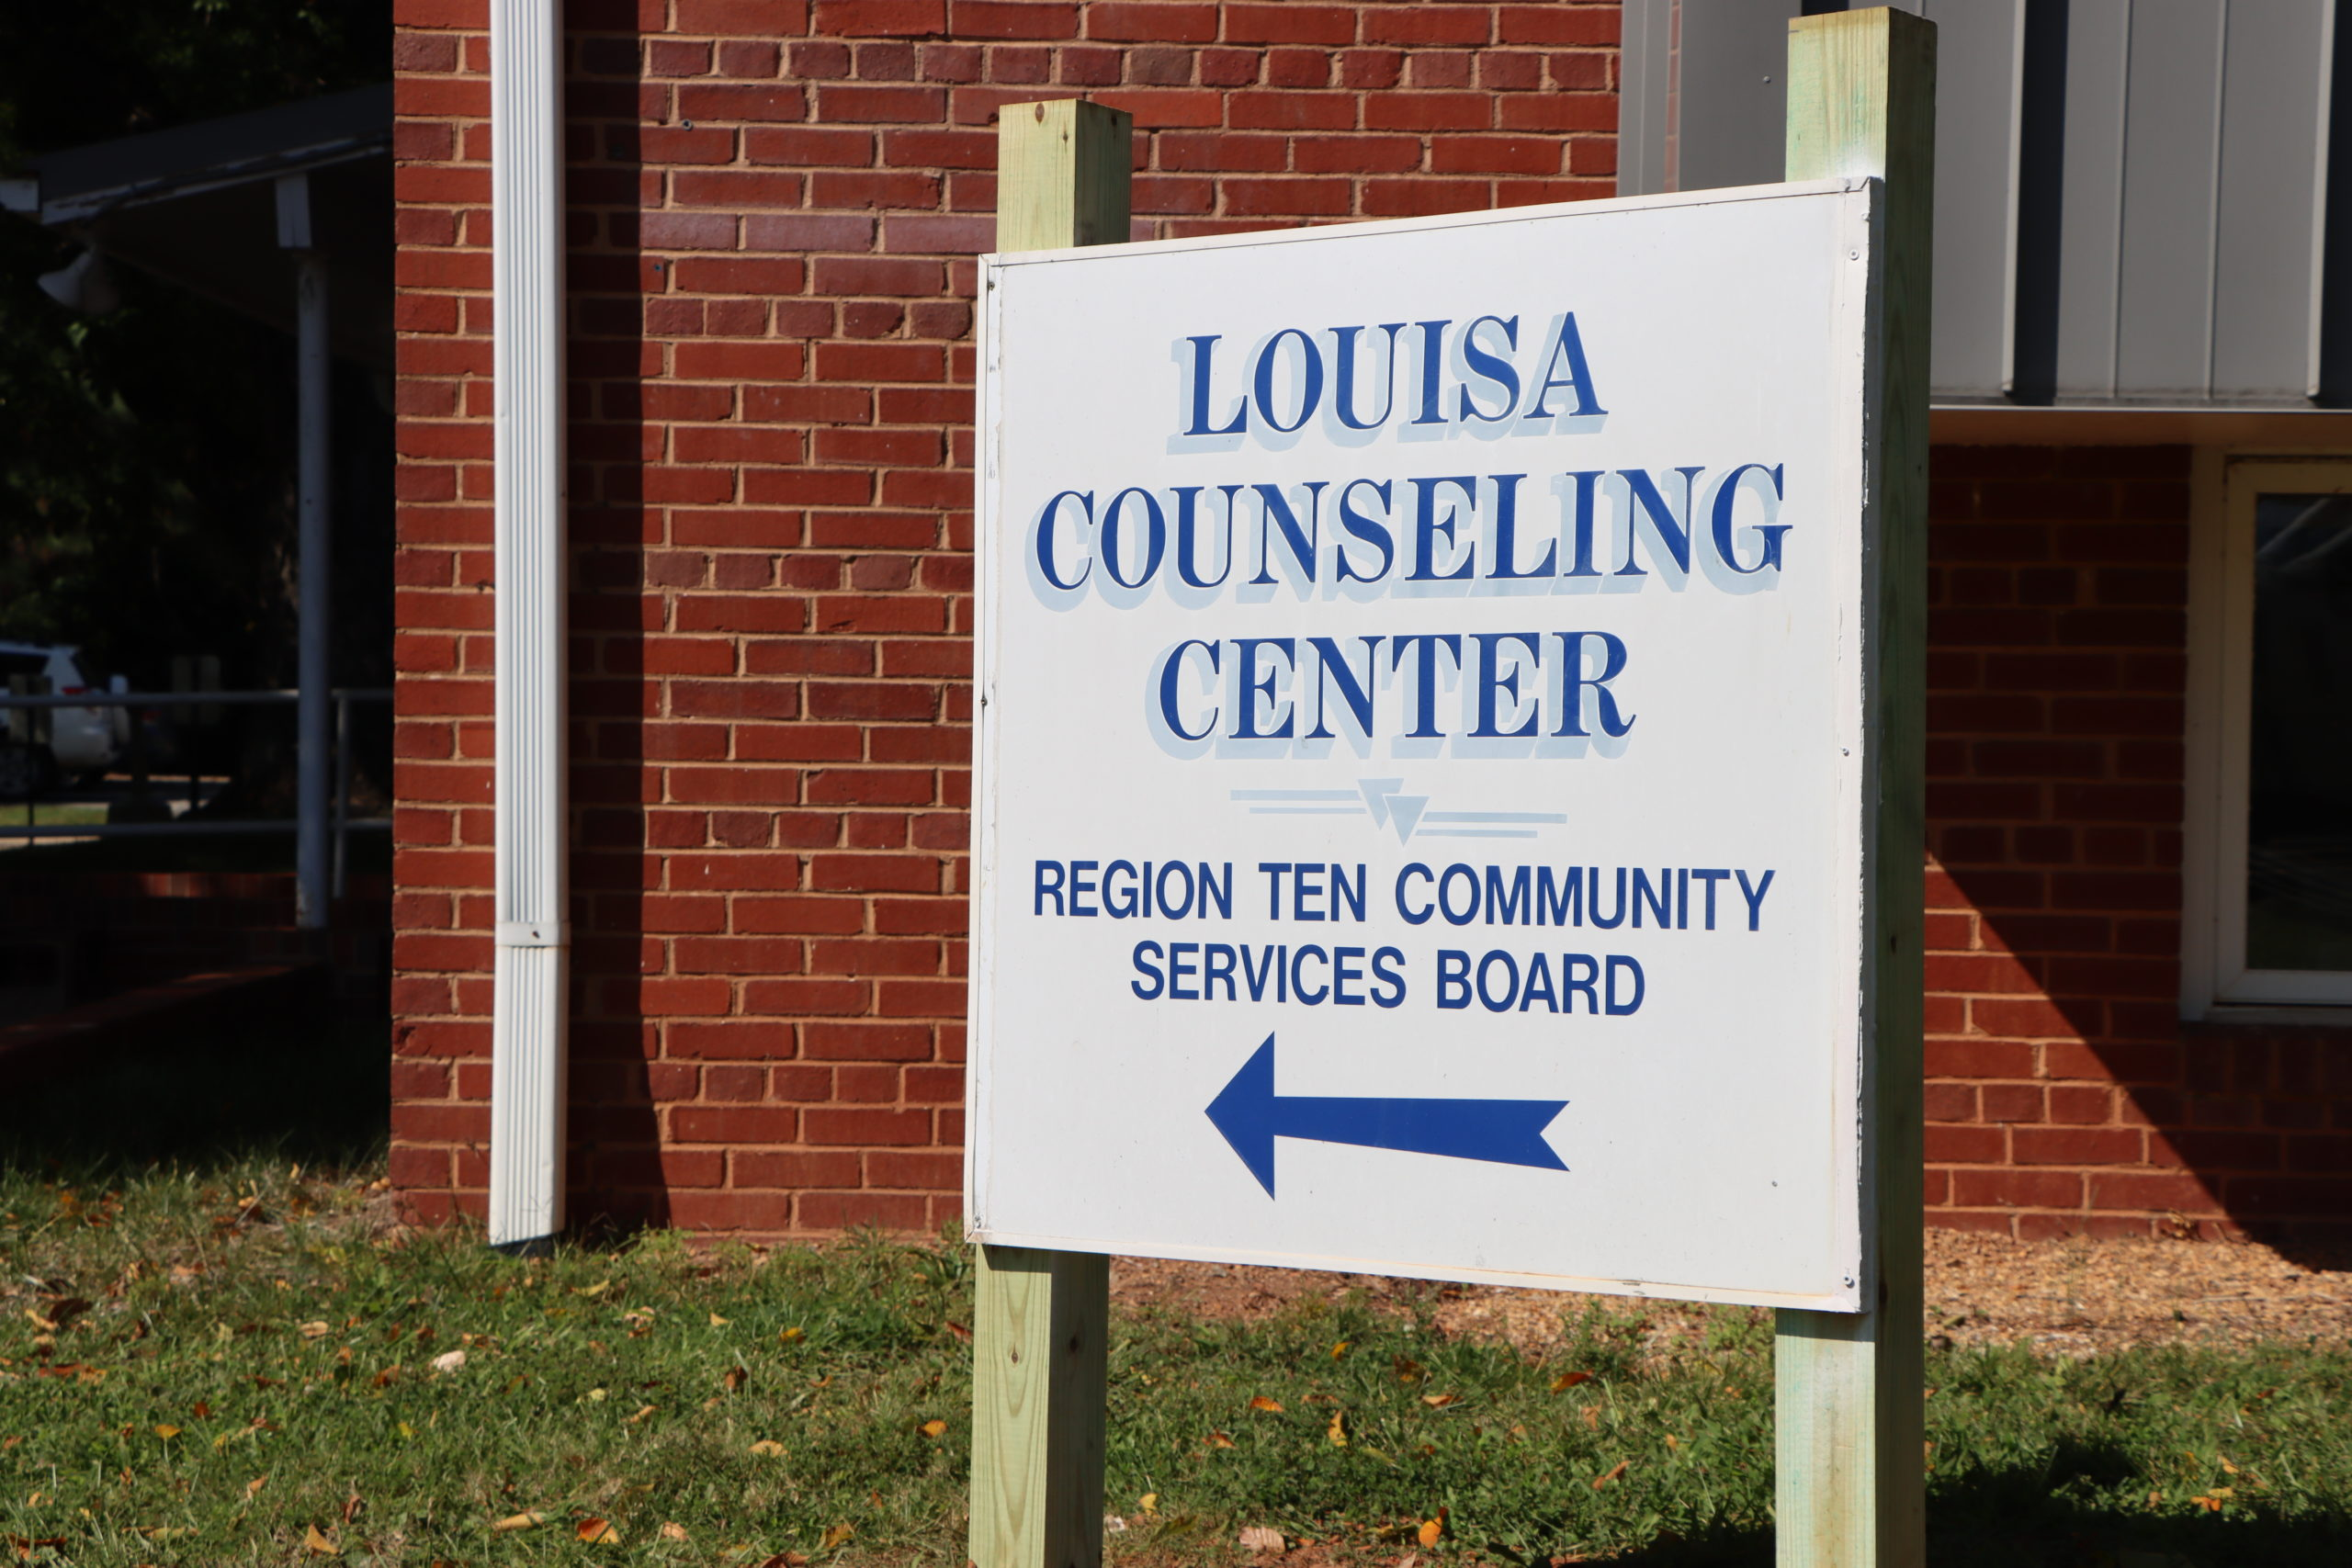 Louisa Counseling Center